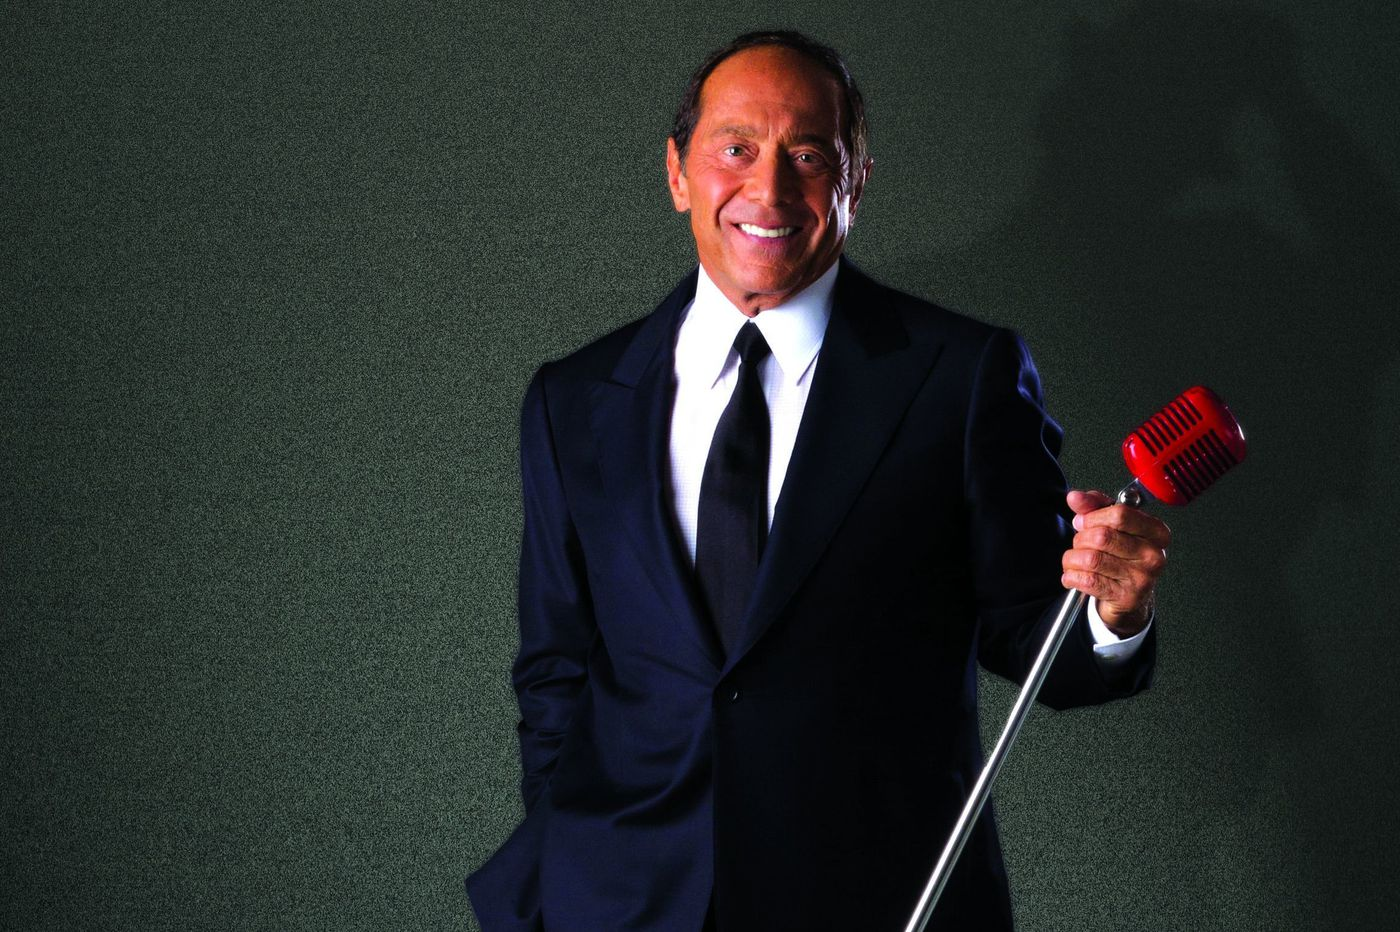 Paul Anka on Frank Sinatra, working with Drake, and why he won't dis Michael Jackson